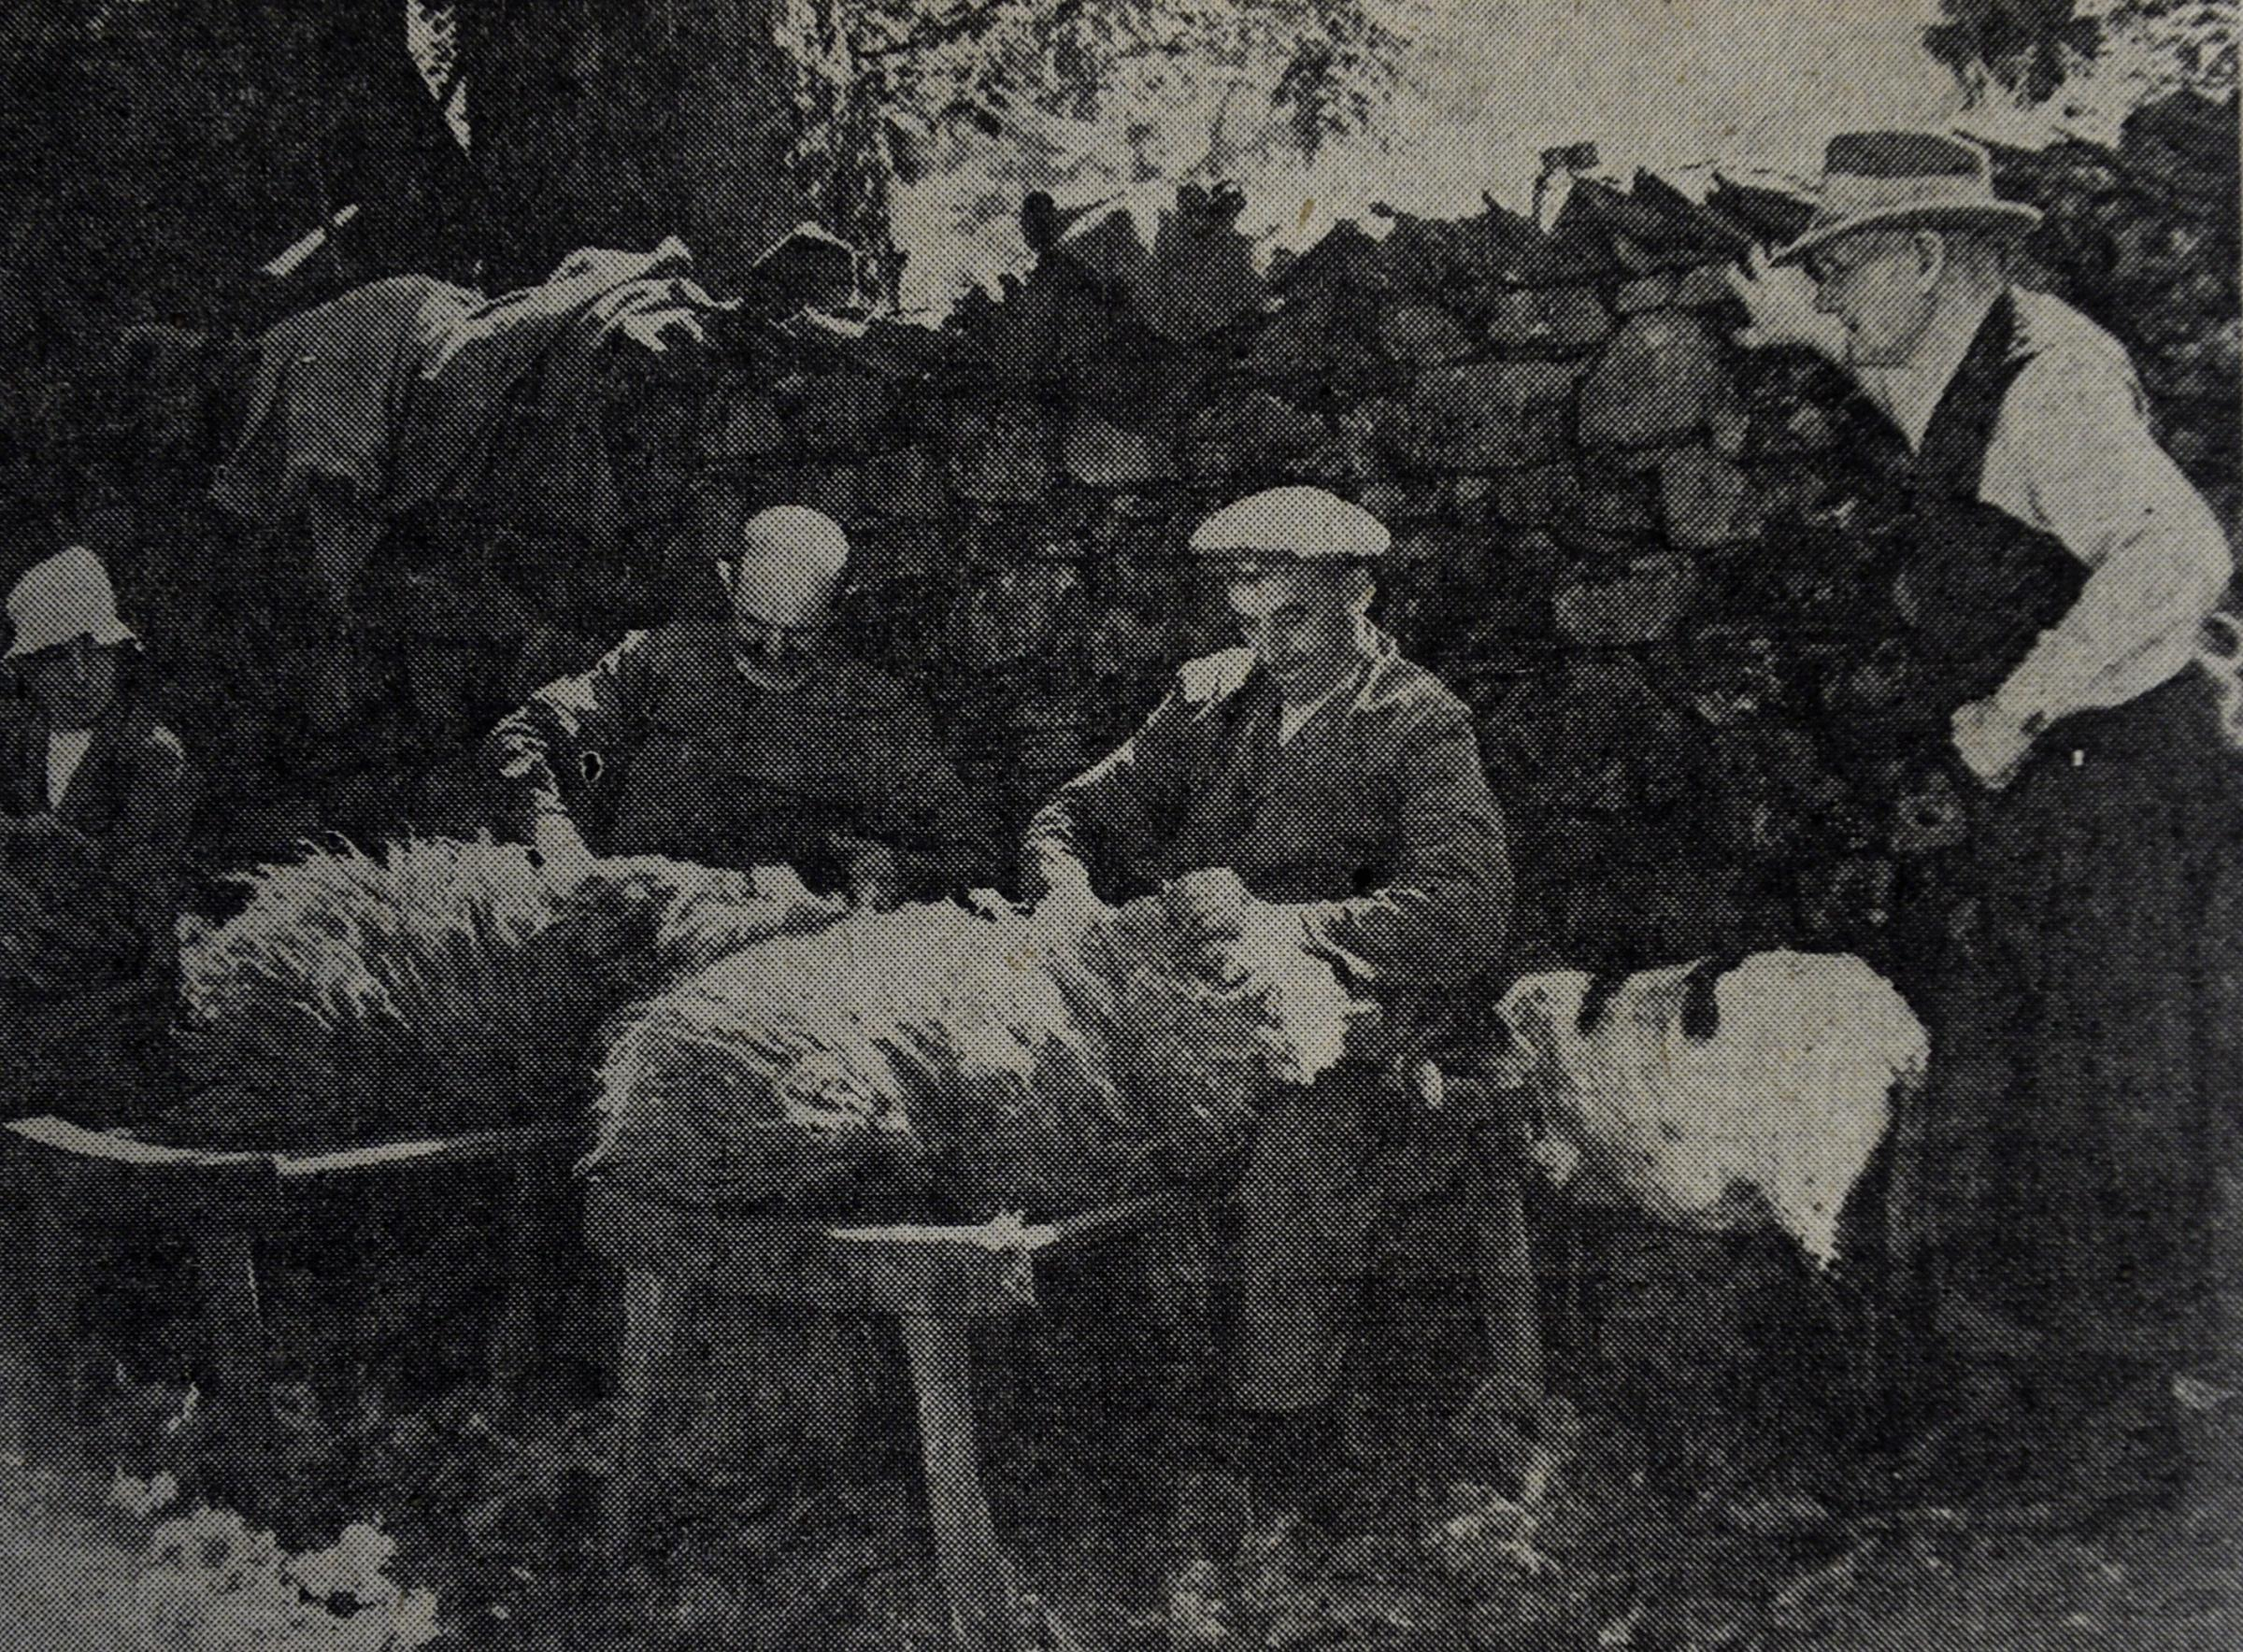 Sheep clipping at Kentmere Hall in 1944